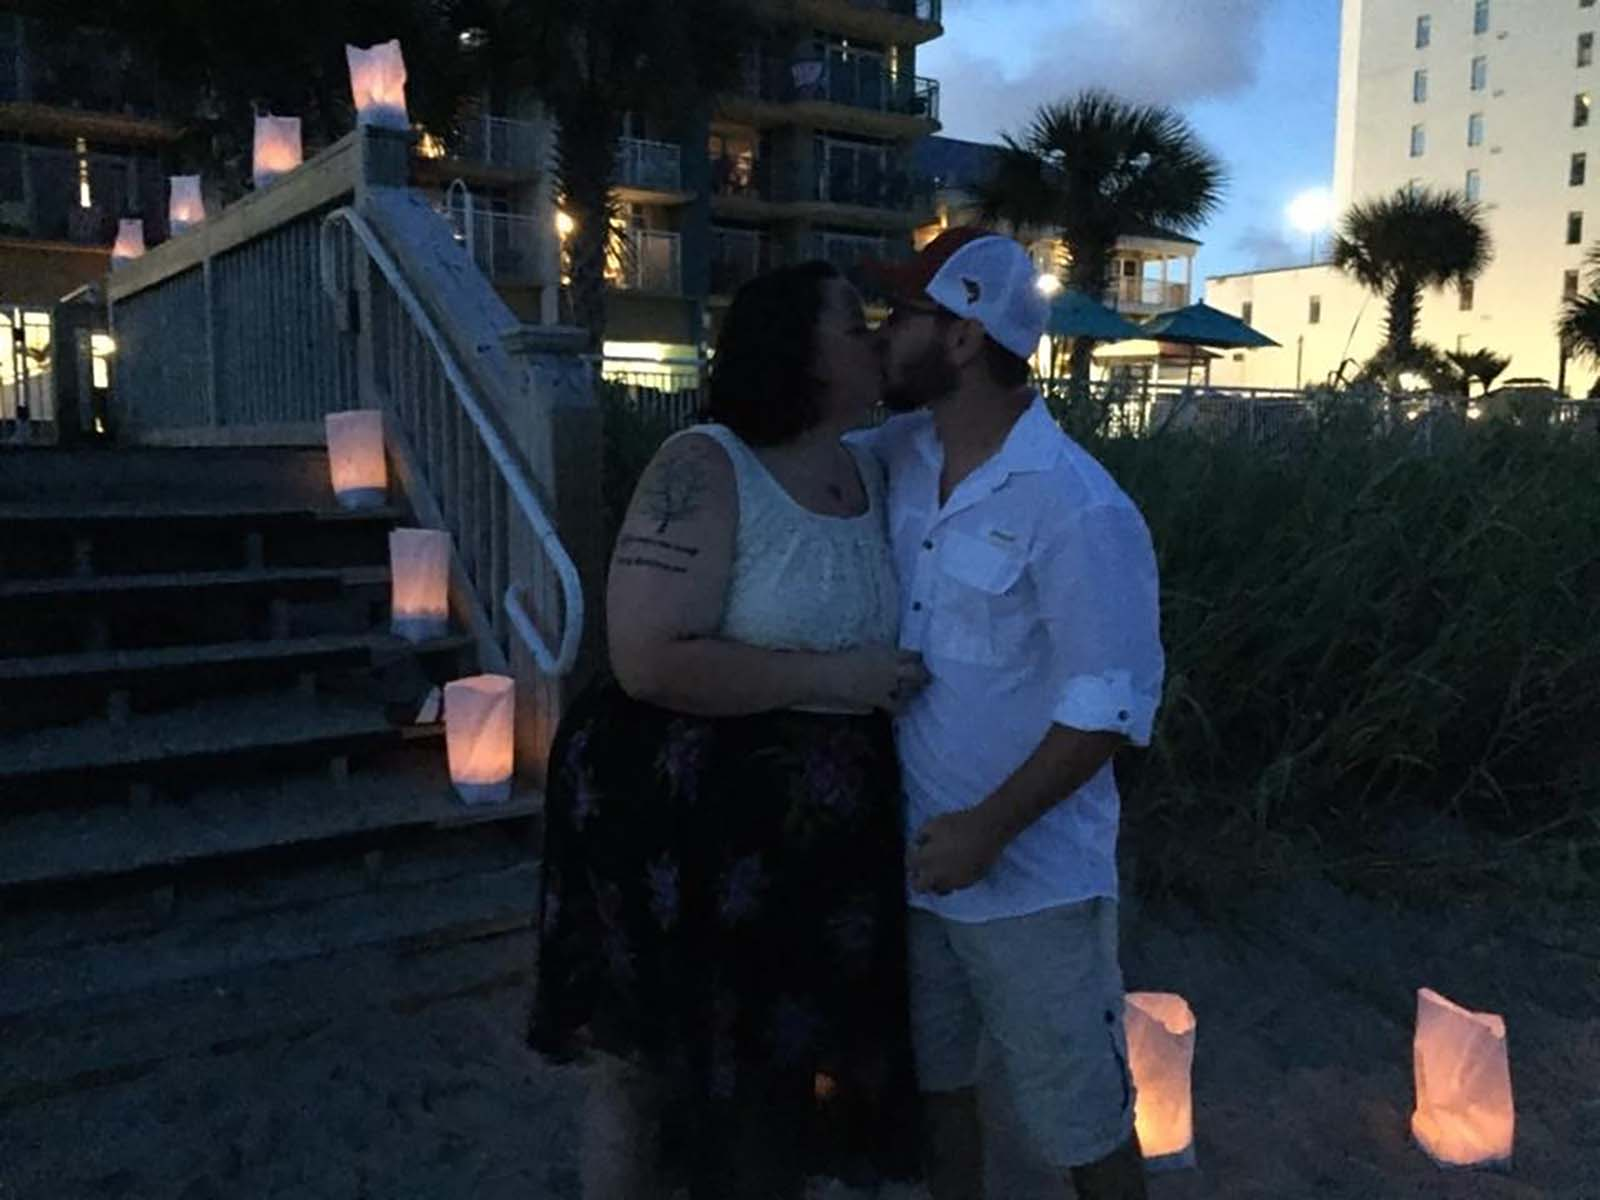 Couple kissing in the dark with lanterns